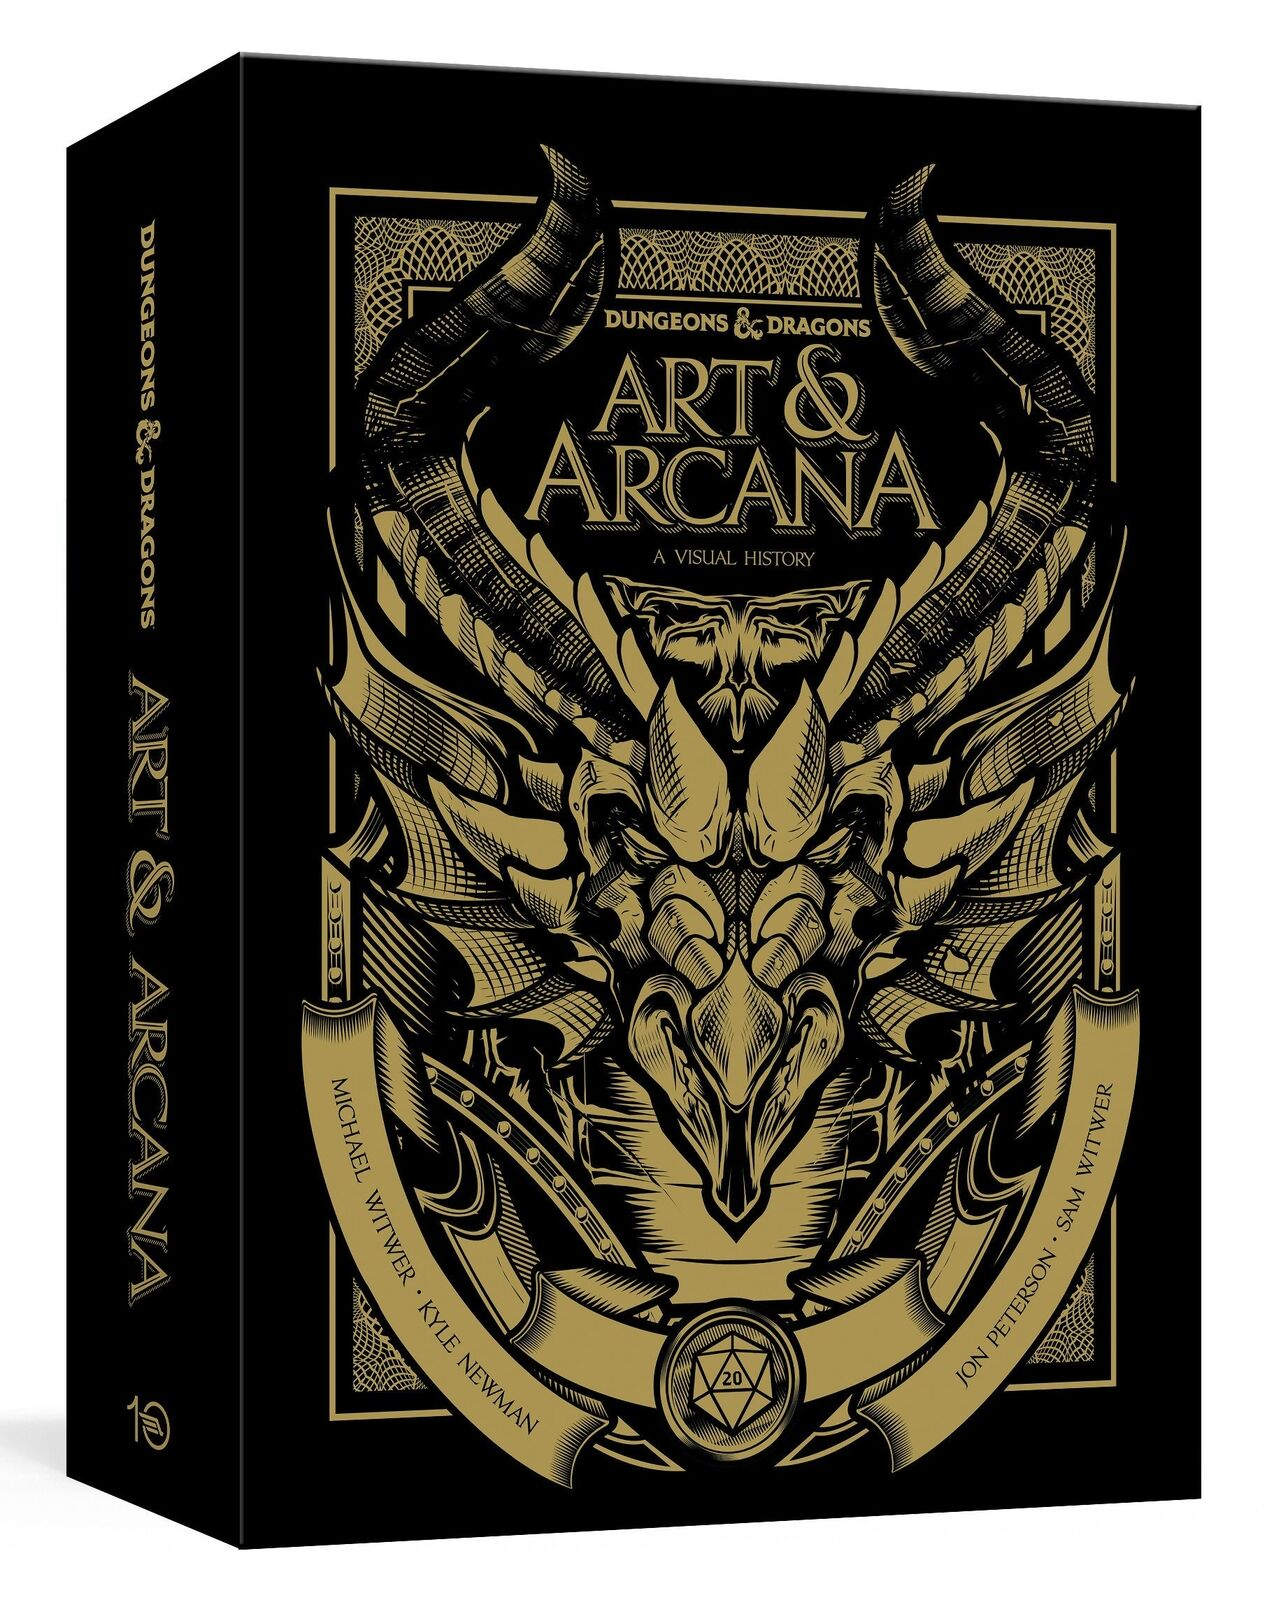 Dungeons and Dragons Art and Arcana Special Edition Boxed Book & Ephemera Set...